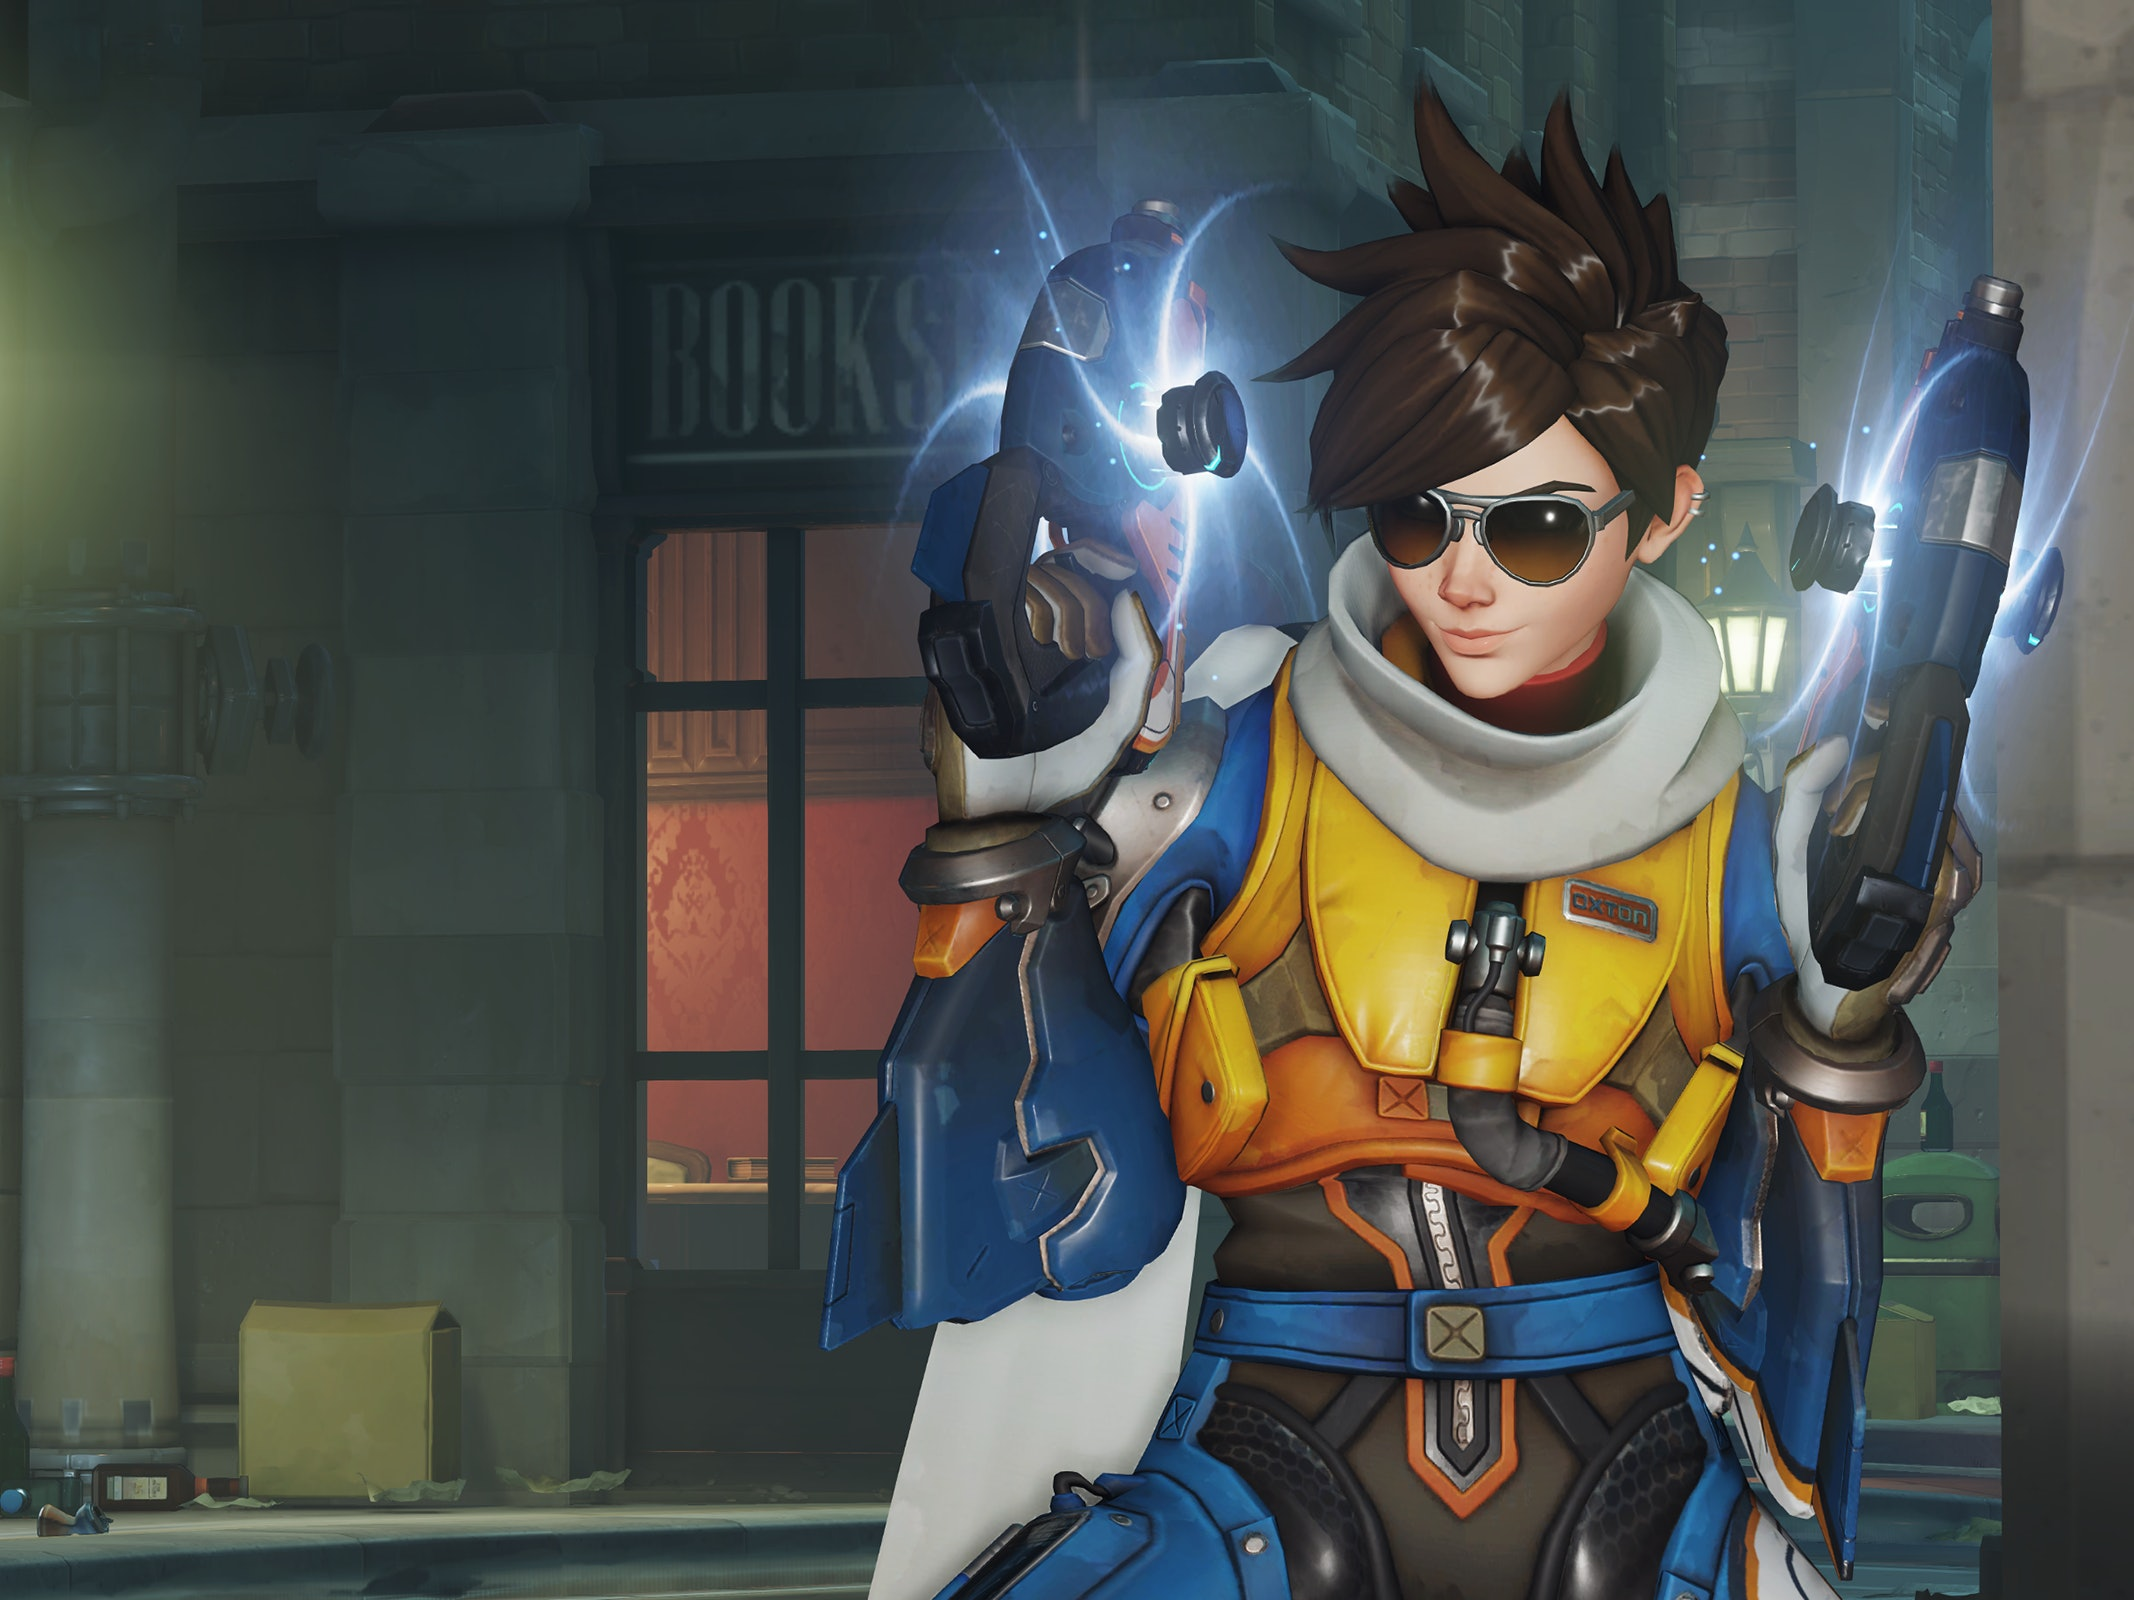 Season 2 of Competitive 'Overwatch' Looks Like a Doozy